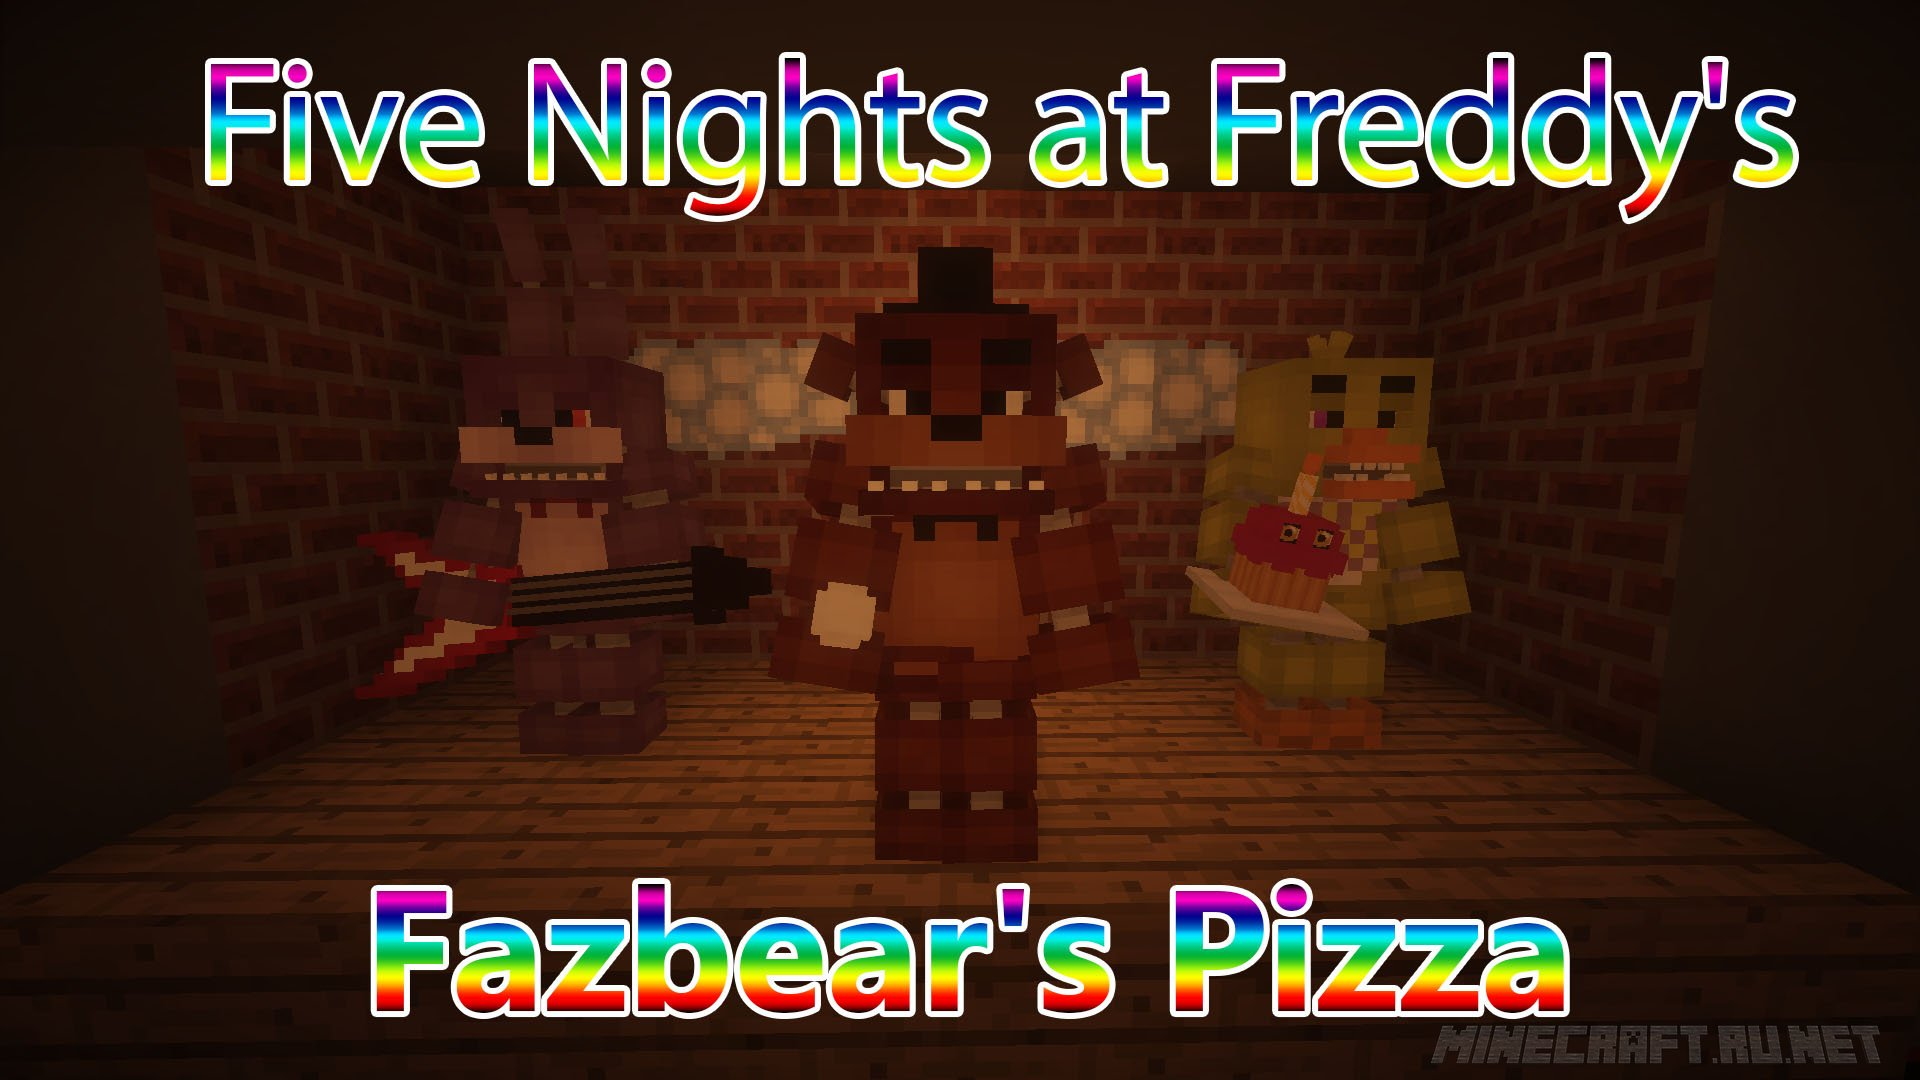 Майнкрафт Five Nights at Freddy's - Fazbear's Pizza (FNAF)